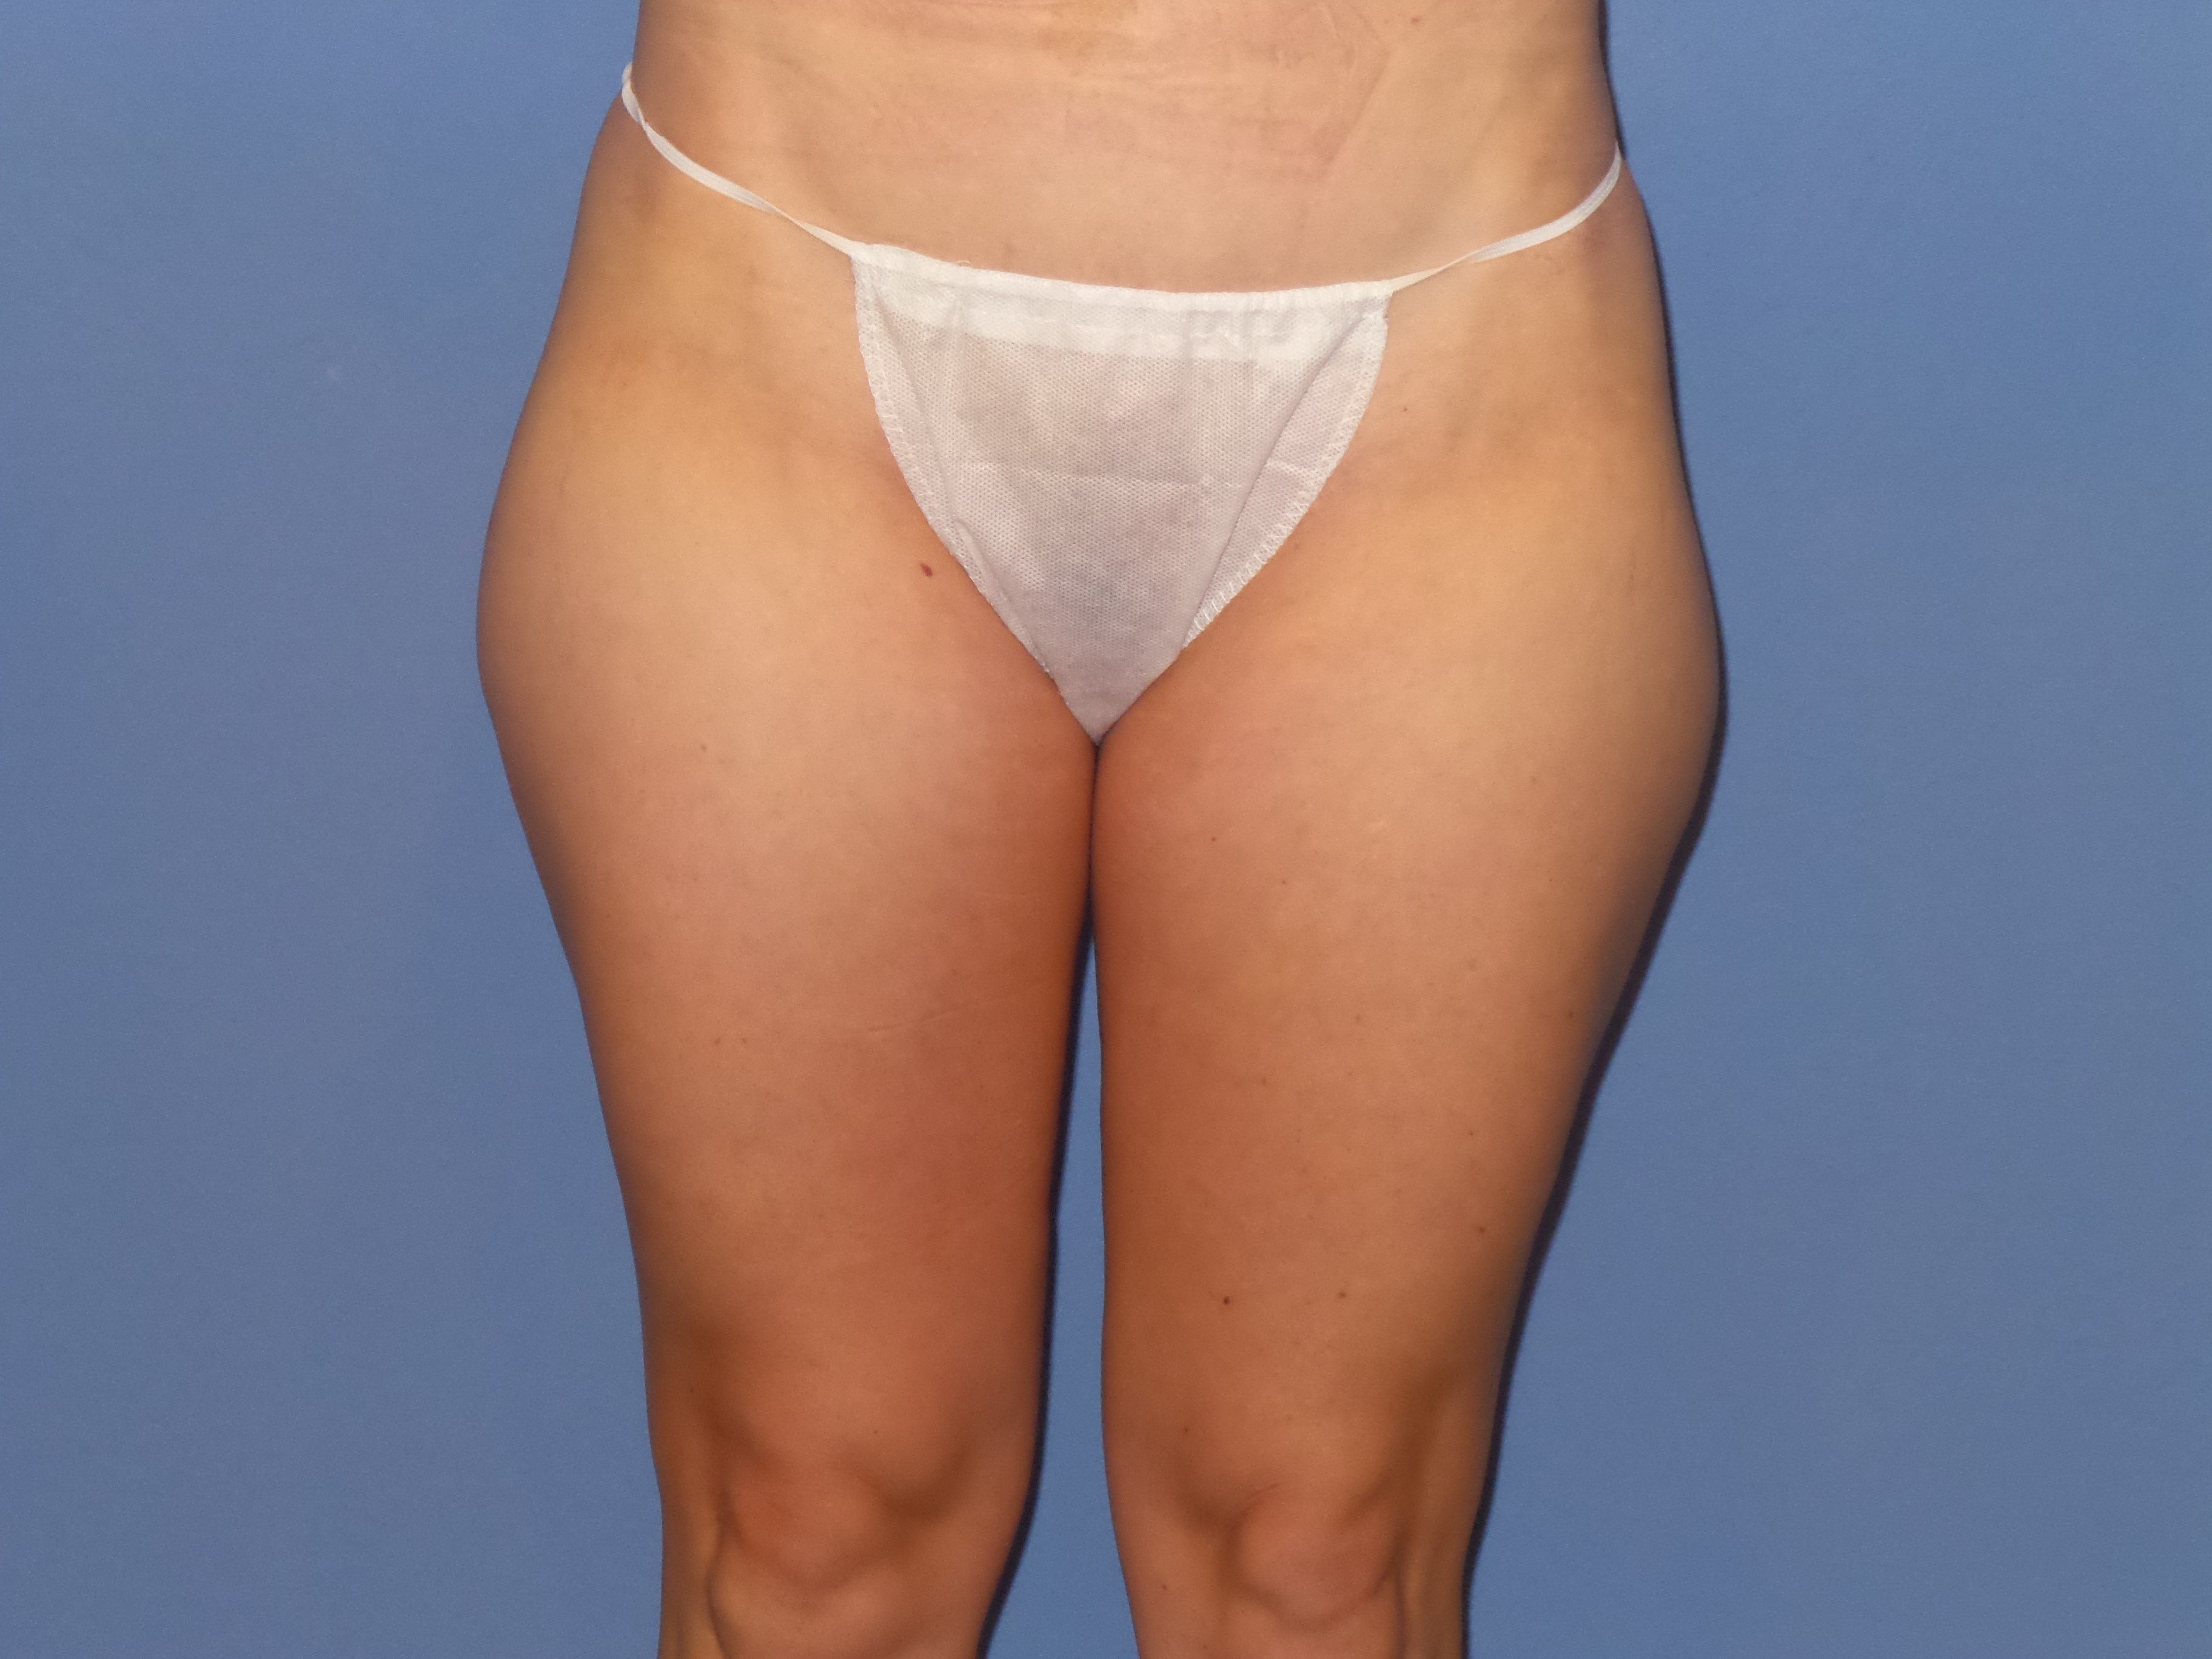 BodyTite Liposuction results Before